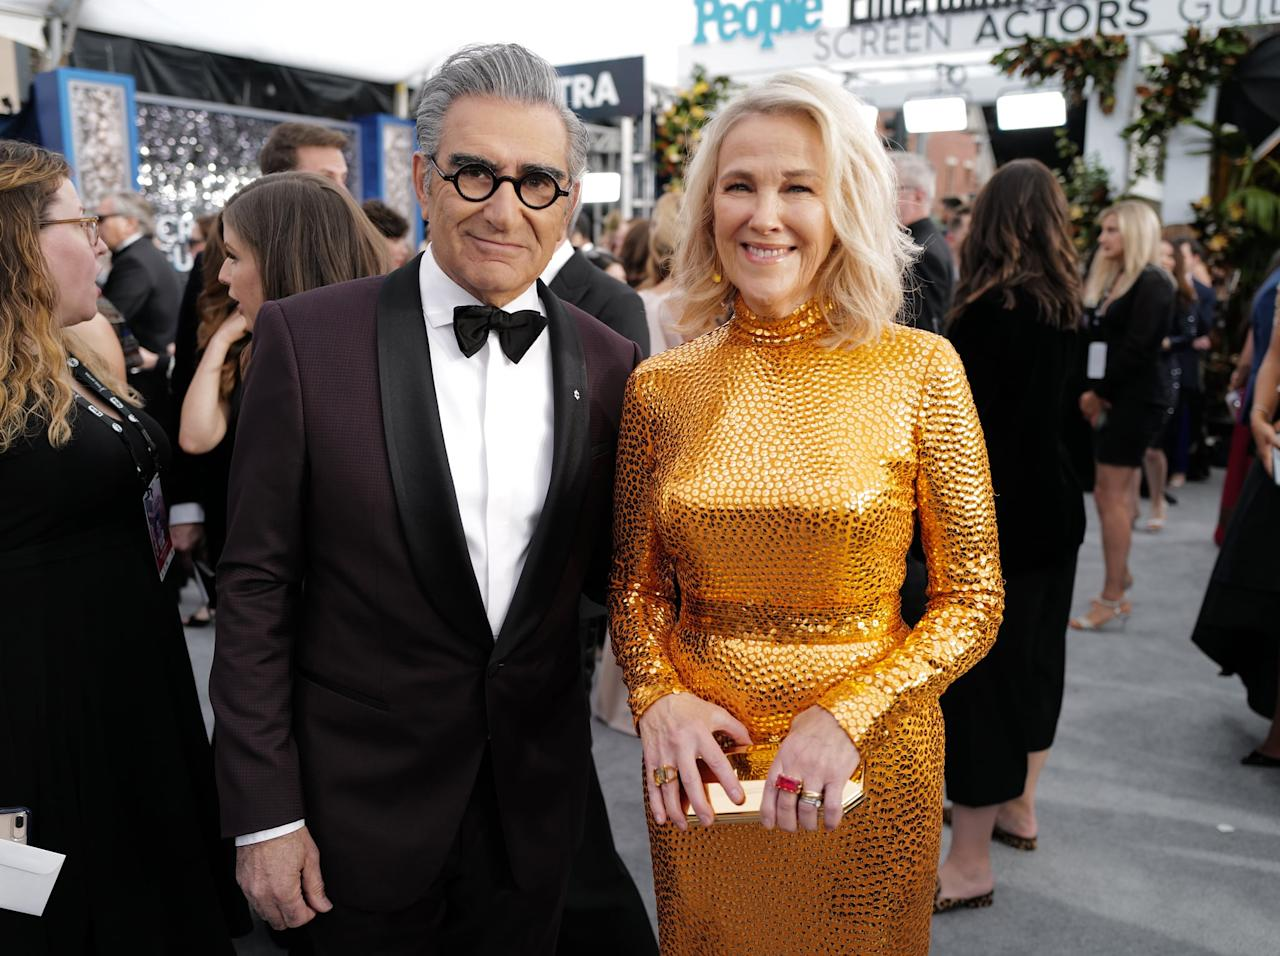 """<ul> <li><strong>On <a href=""""http://www.buzzfeed.com/jarettwieselman/eugene-levy-and-catherine-ohara-look-back-on-their-40-year-f"""" target=""""_blank"""" class=""""ga-track"""" data-ga-category=""""internal click"""" data-ga-label=""""http://www.buzzfeed.com/jarettwieselman/eugene-levy-and-catherine-ohara-look-back-on-their-40-year-f"""" data-ga-action=""""body text link"""">why she and Eugene work so well together</a></strong>: """"[W]ith Eugene - this is the lovely thing about working with a friend who you love and respect, and I really love and respect Eugene - he is really funny, he's very thoughtful in his work, he's a great writer, and a great actor. So even when it gets into an argument, I believe that there's no other crap in the way, it's all about making this the best it can be. And I hope he believes the same of me. It's great.""""</li> <li><strong>On <a href=""""http://www.hollywoodreporter.com/live-feed/schitts-creeks-eugene-levy-catherine-761841"""" target=""""_blank"""" class=""""ga-track"""" data-ga-category=""""internal click"""" data-ga-label=""""http://www.hollywoodreporter.com/live-feed/schitts-creeks-eugene-levy-catherine-761841"""" data-ga-action=""""body text link"""">what she's learned from Eugene about comedy</a>: </strong>""""Eugene wrote more group scenes than anyone else on <strong>SCTV</strong>. His writing was and is very clean and precise. He's generous in his writing great material for others but he doesn't overwrite. His writing inspires and leaves lots to the imagination.""""</li> </ul>"""